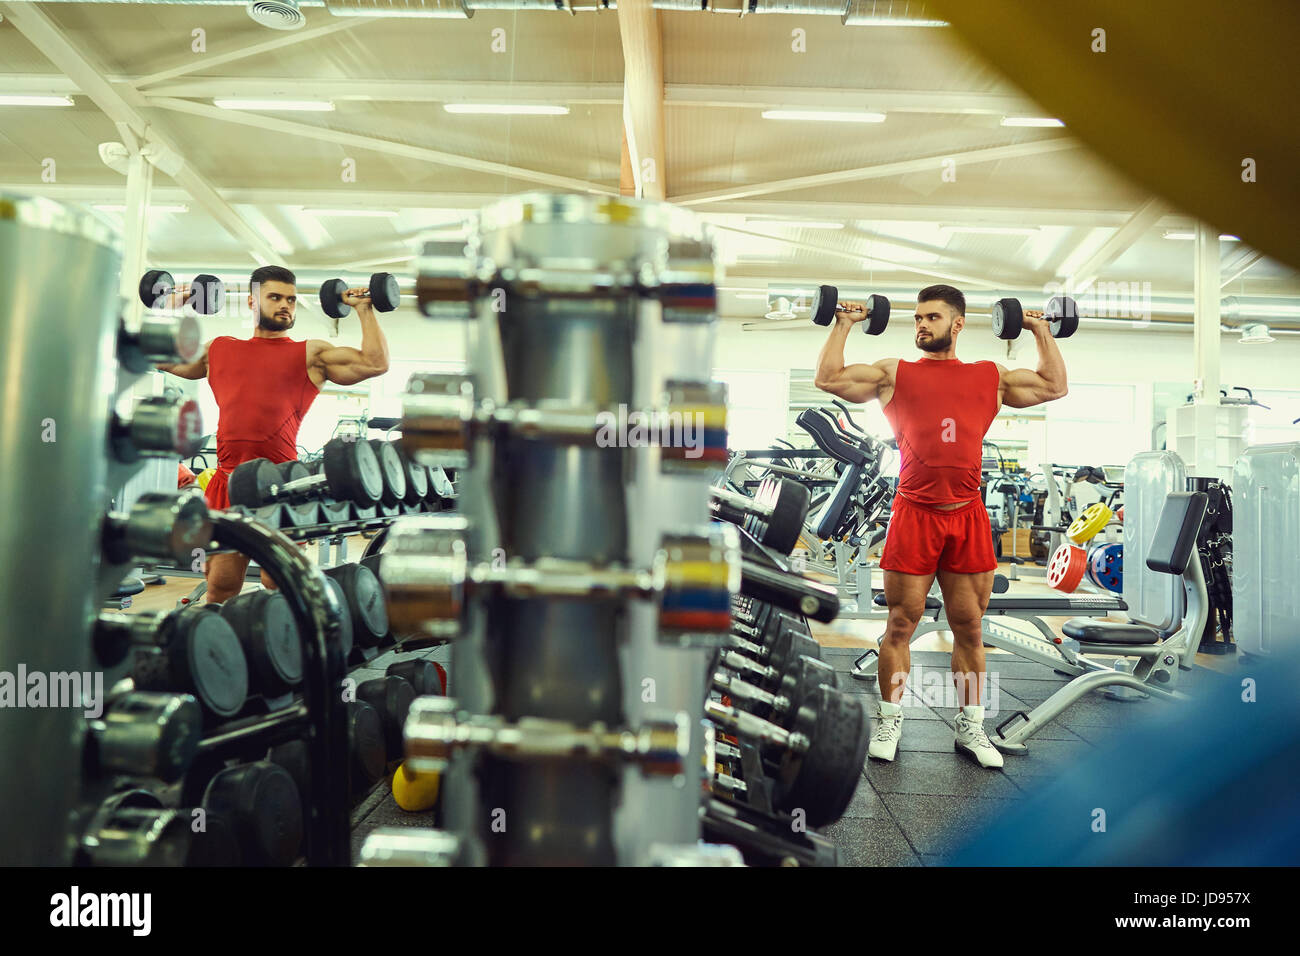 Bodybuilder with dumbbells doing exercises in the gym - Stock Image